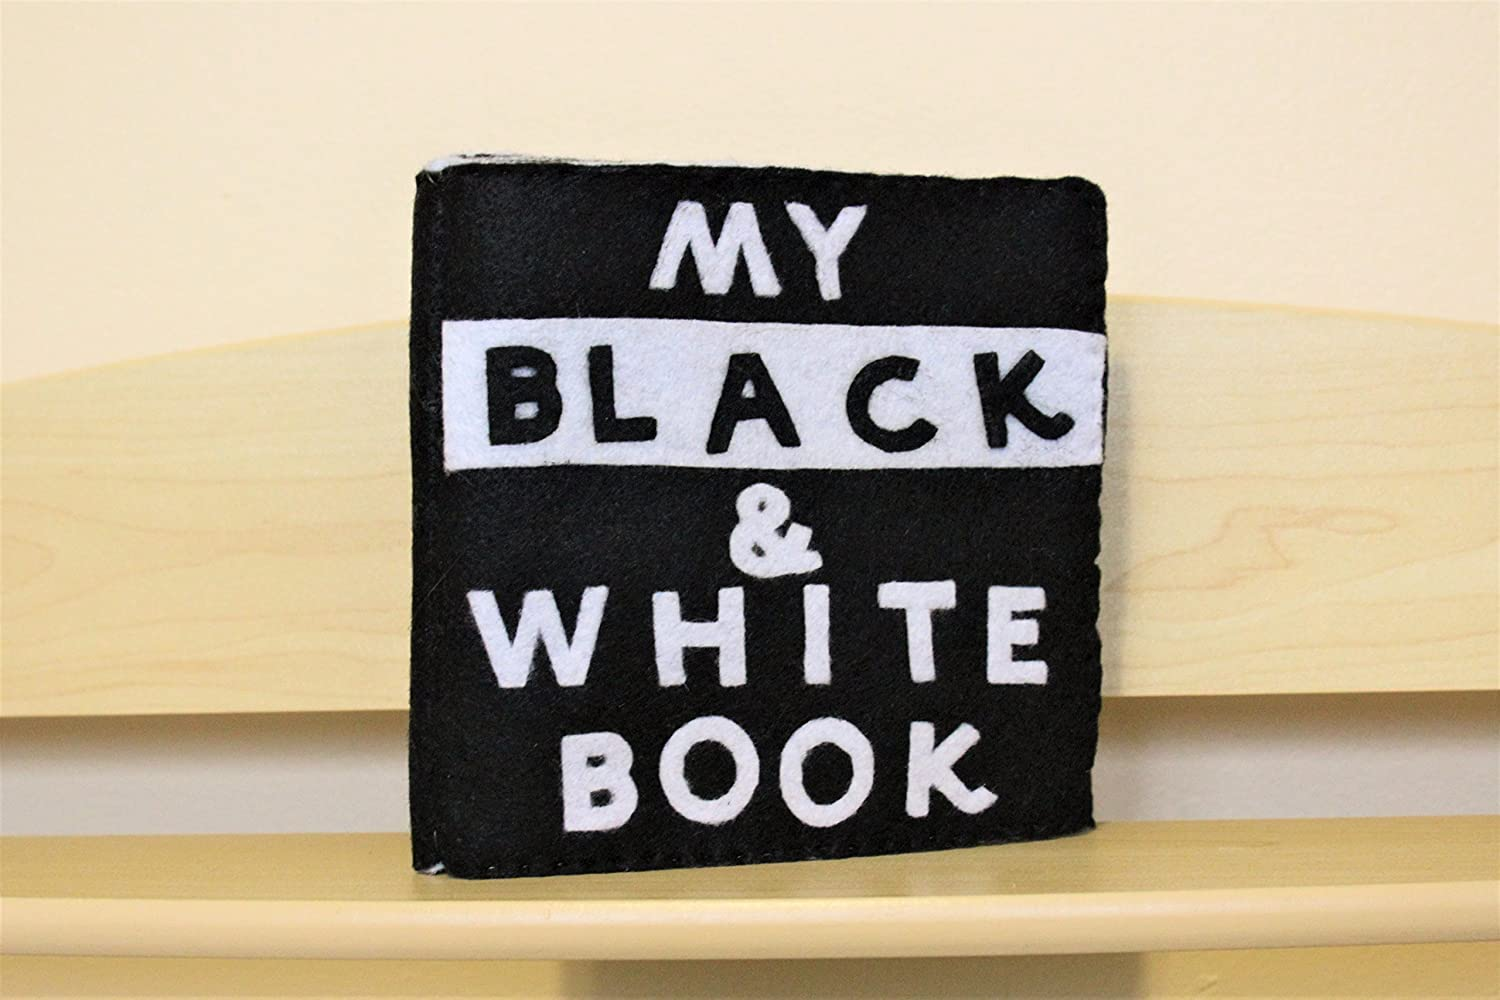 My Black & White Book